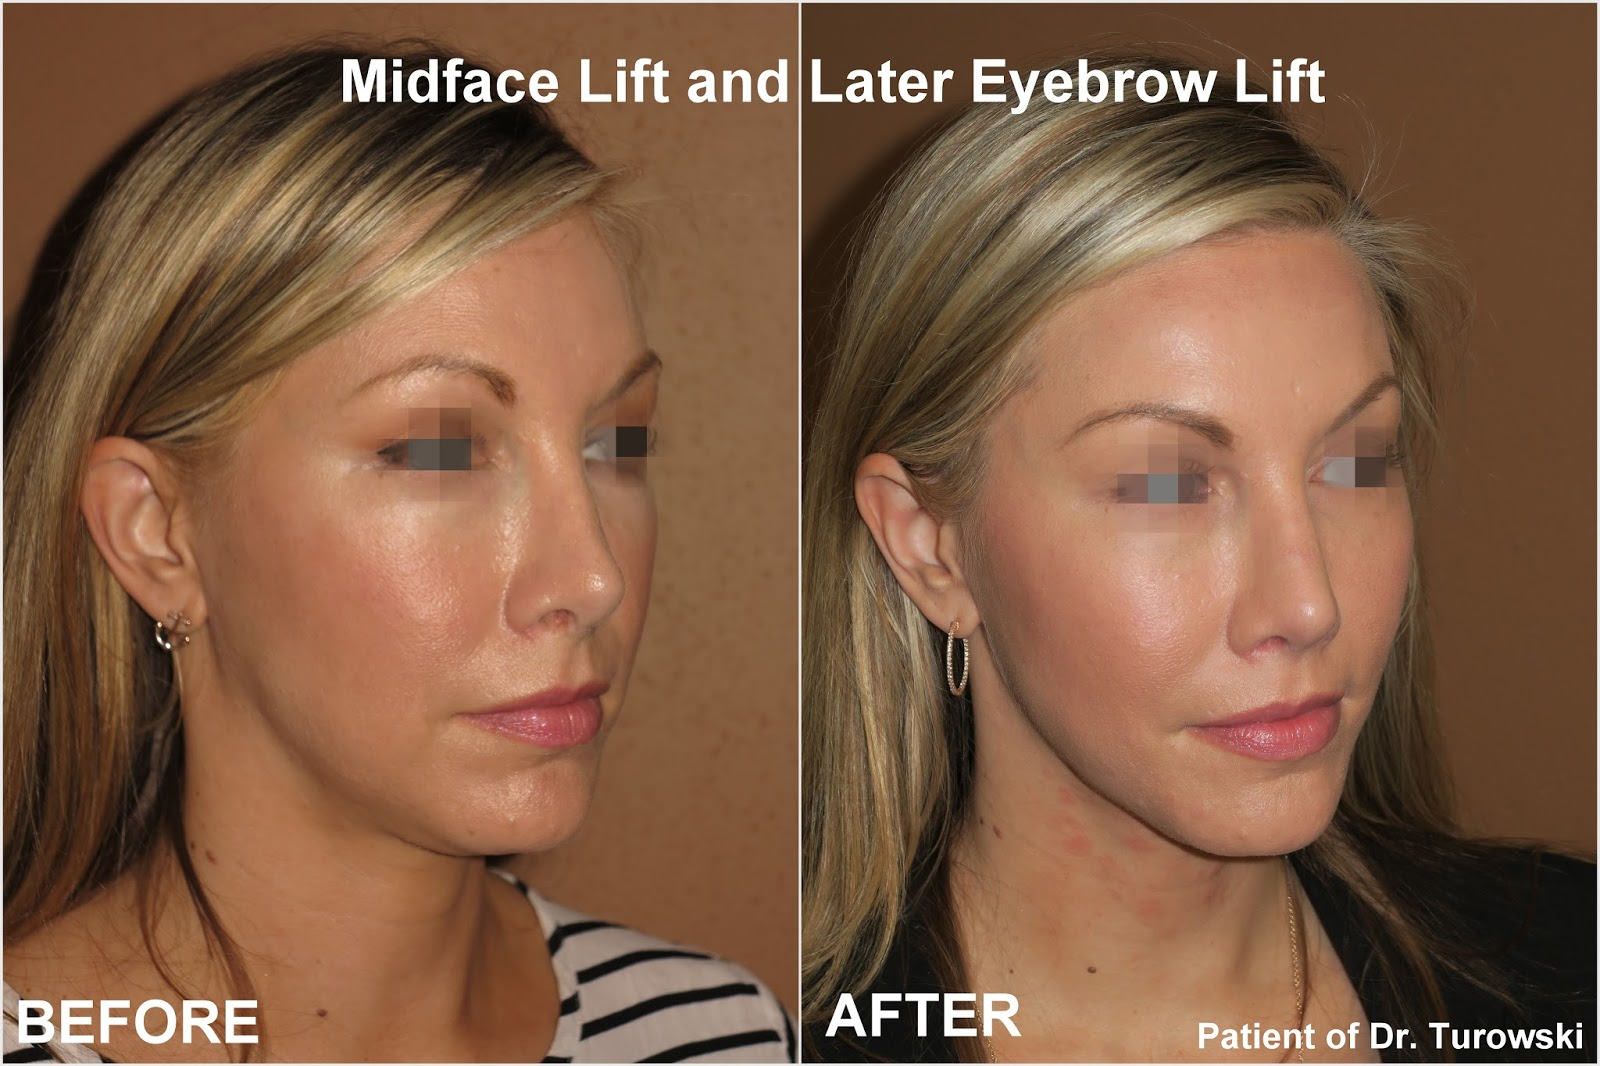 New Horizons Plastic Surgery Midface Lift And Lateral Eyebrow Lift